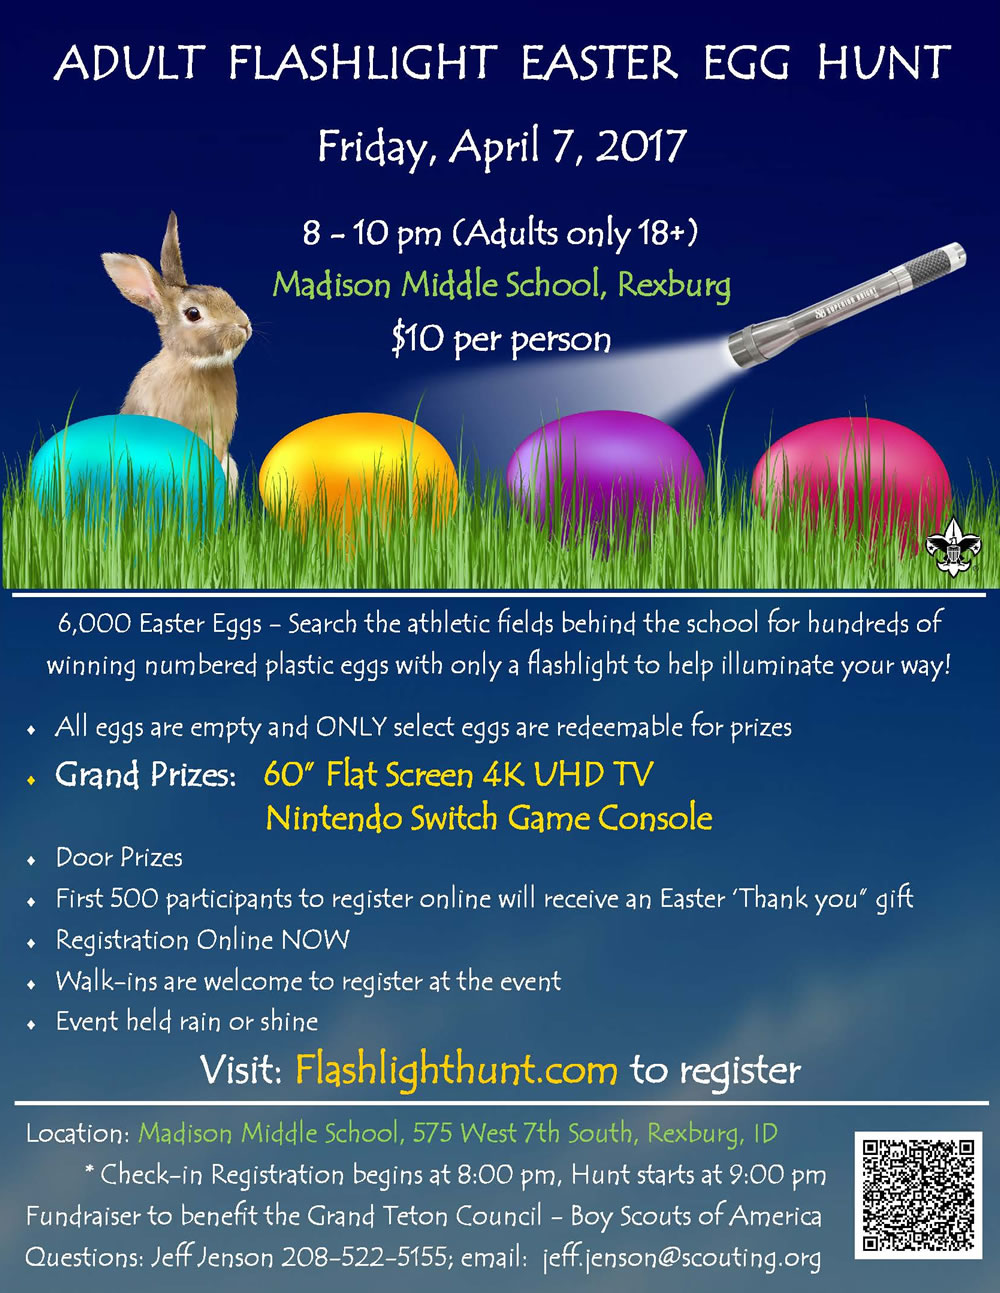 Easter Egg Flashlight Hunt Adults Only 18